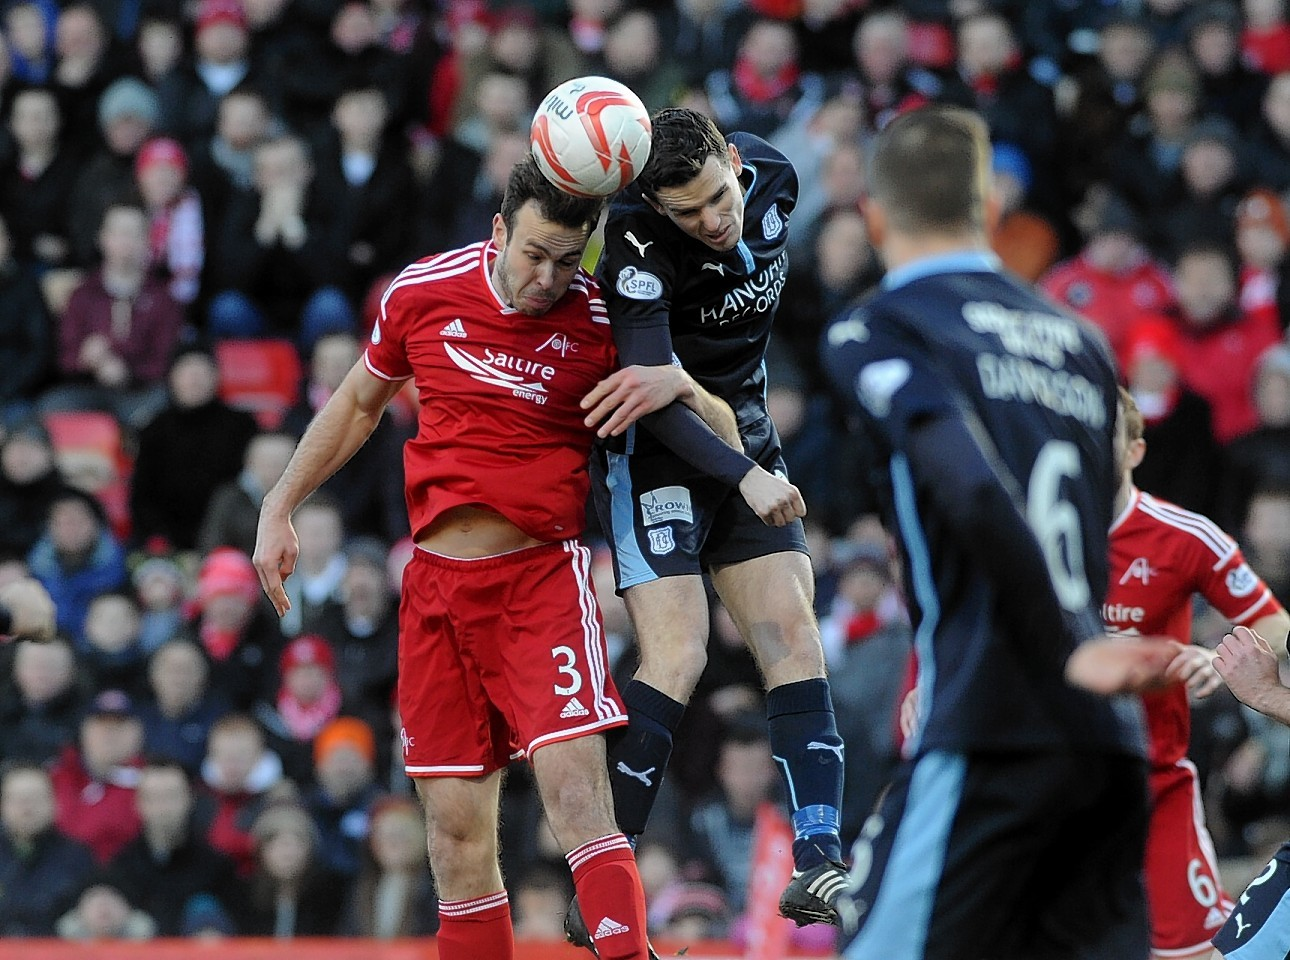 The Dons face Dundee at Dens Park on Sunday.